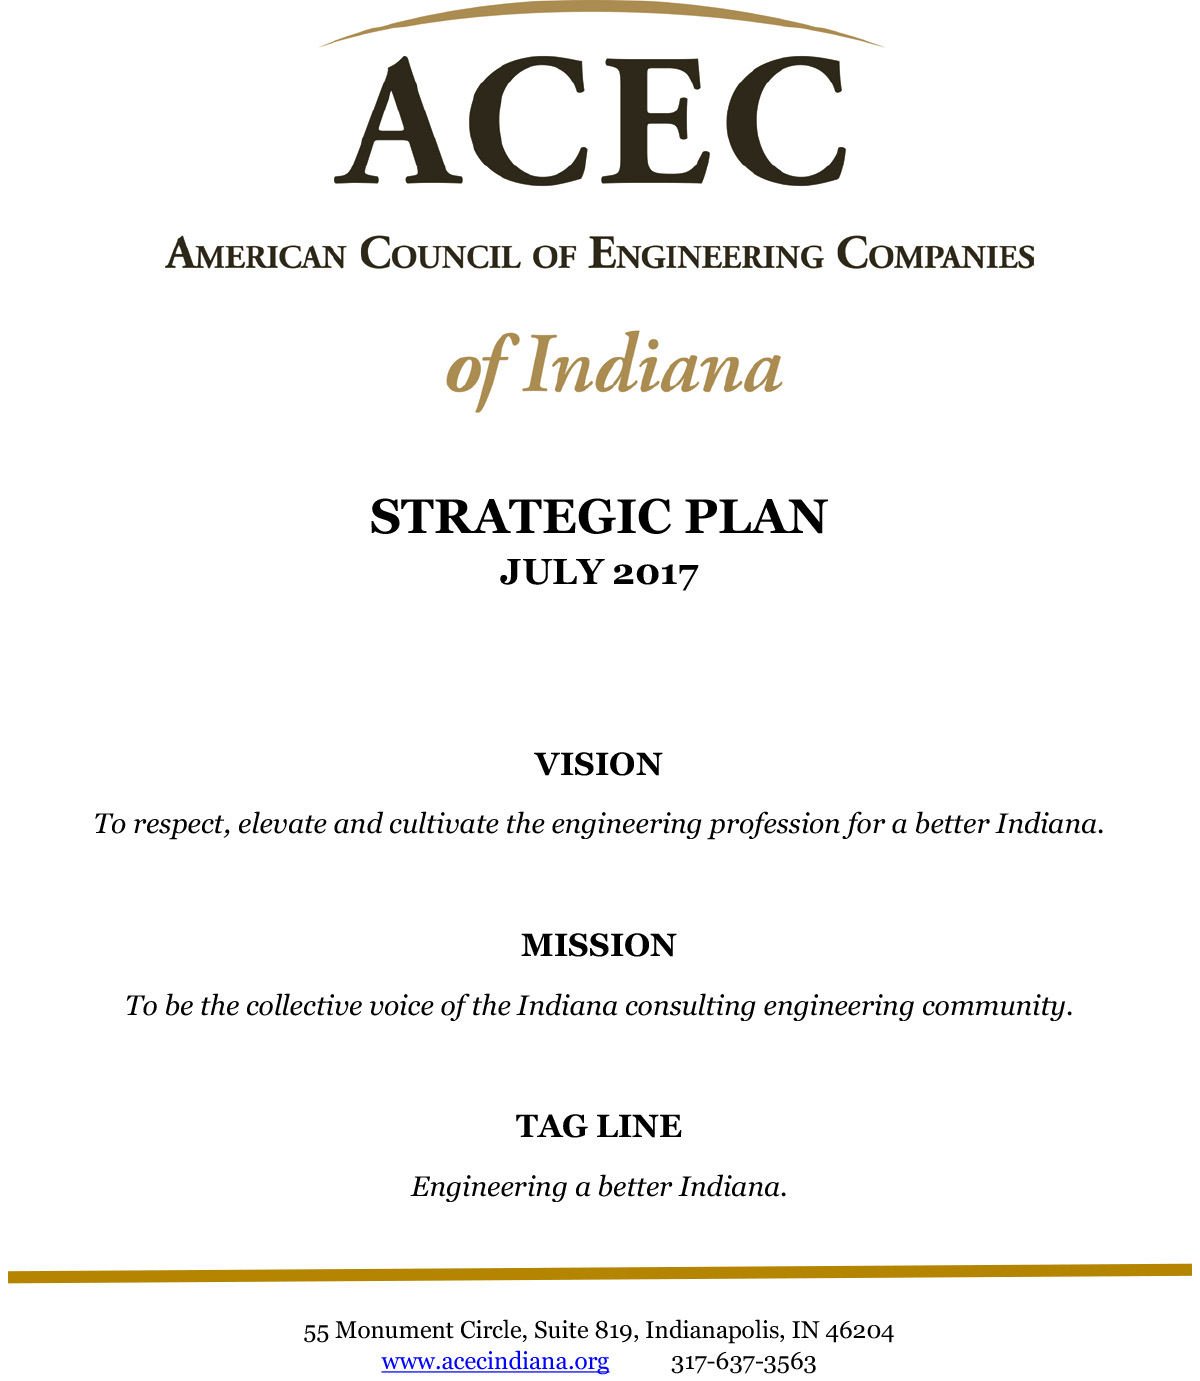 Strategic Plan - American Council of Engineering Companies of Indiana